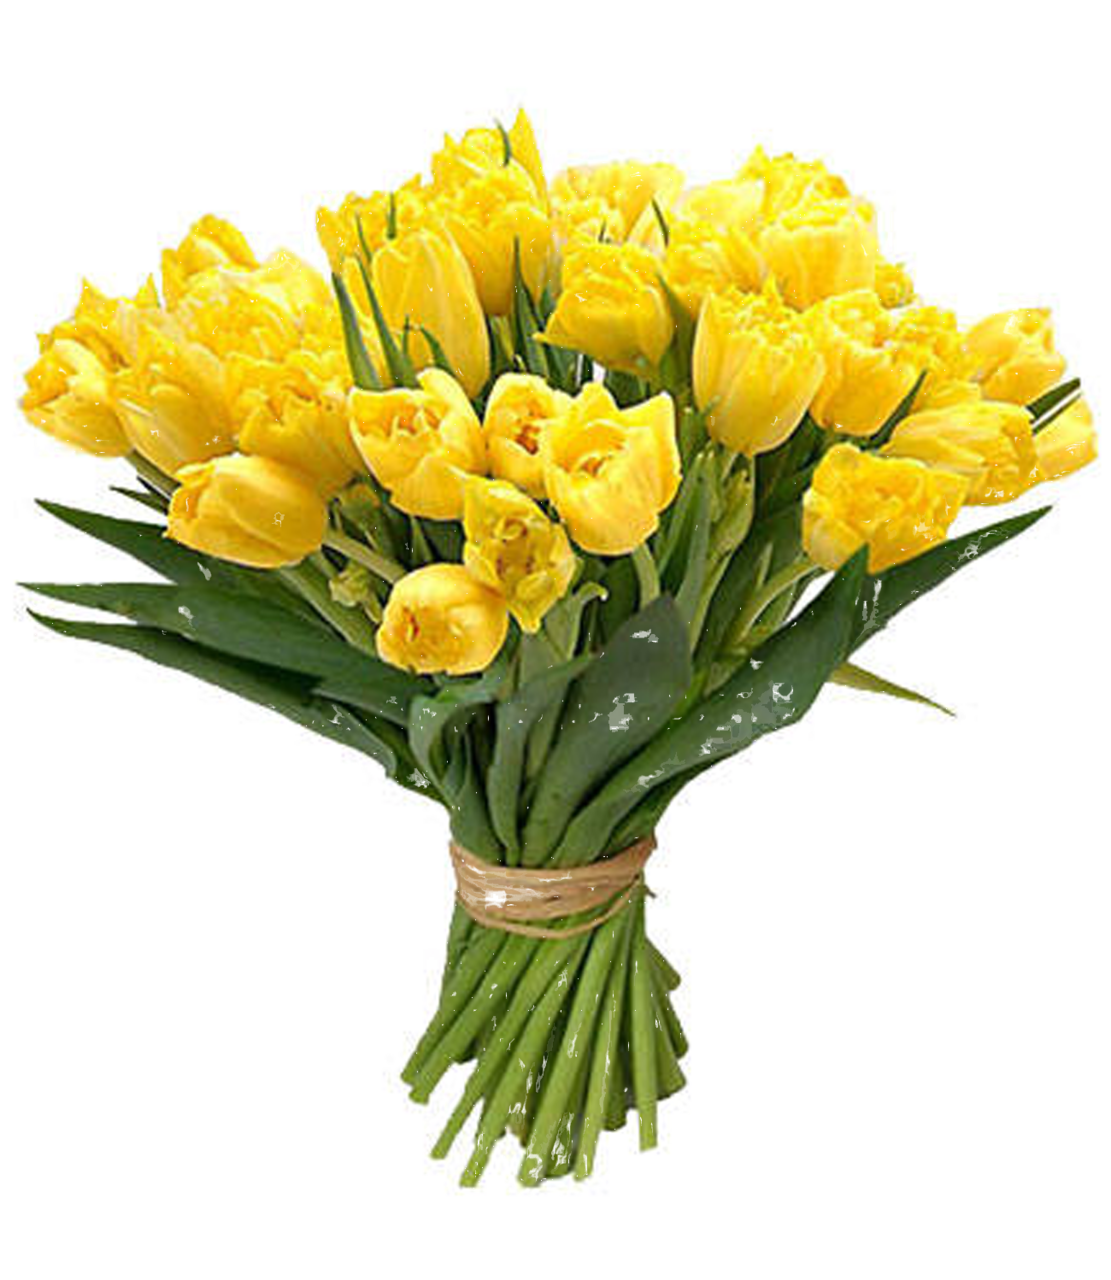 yellow roses bouquet flowers images download #8196